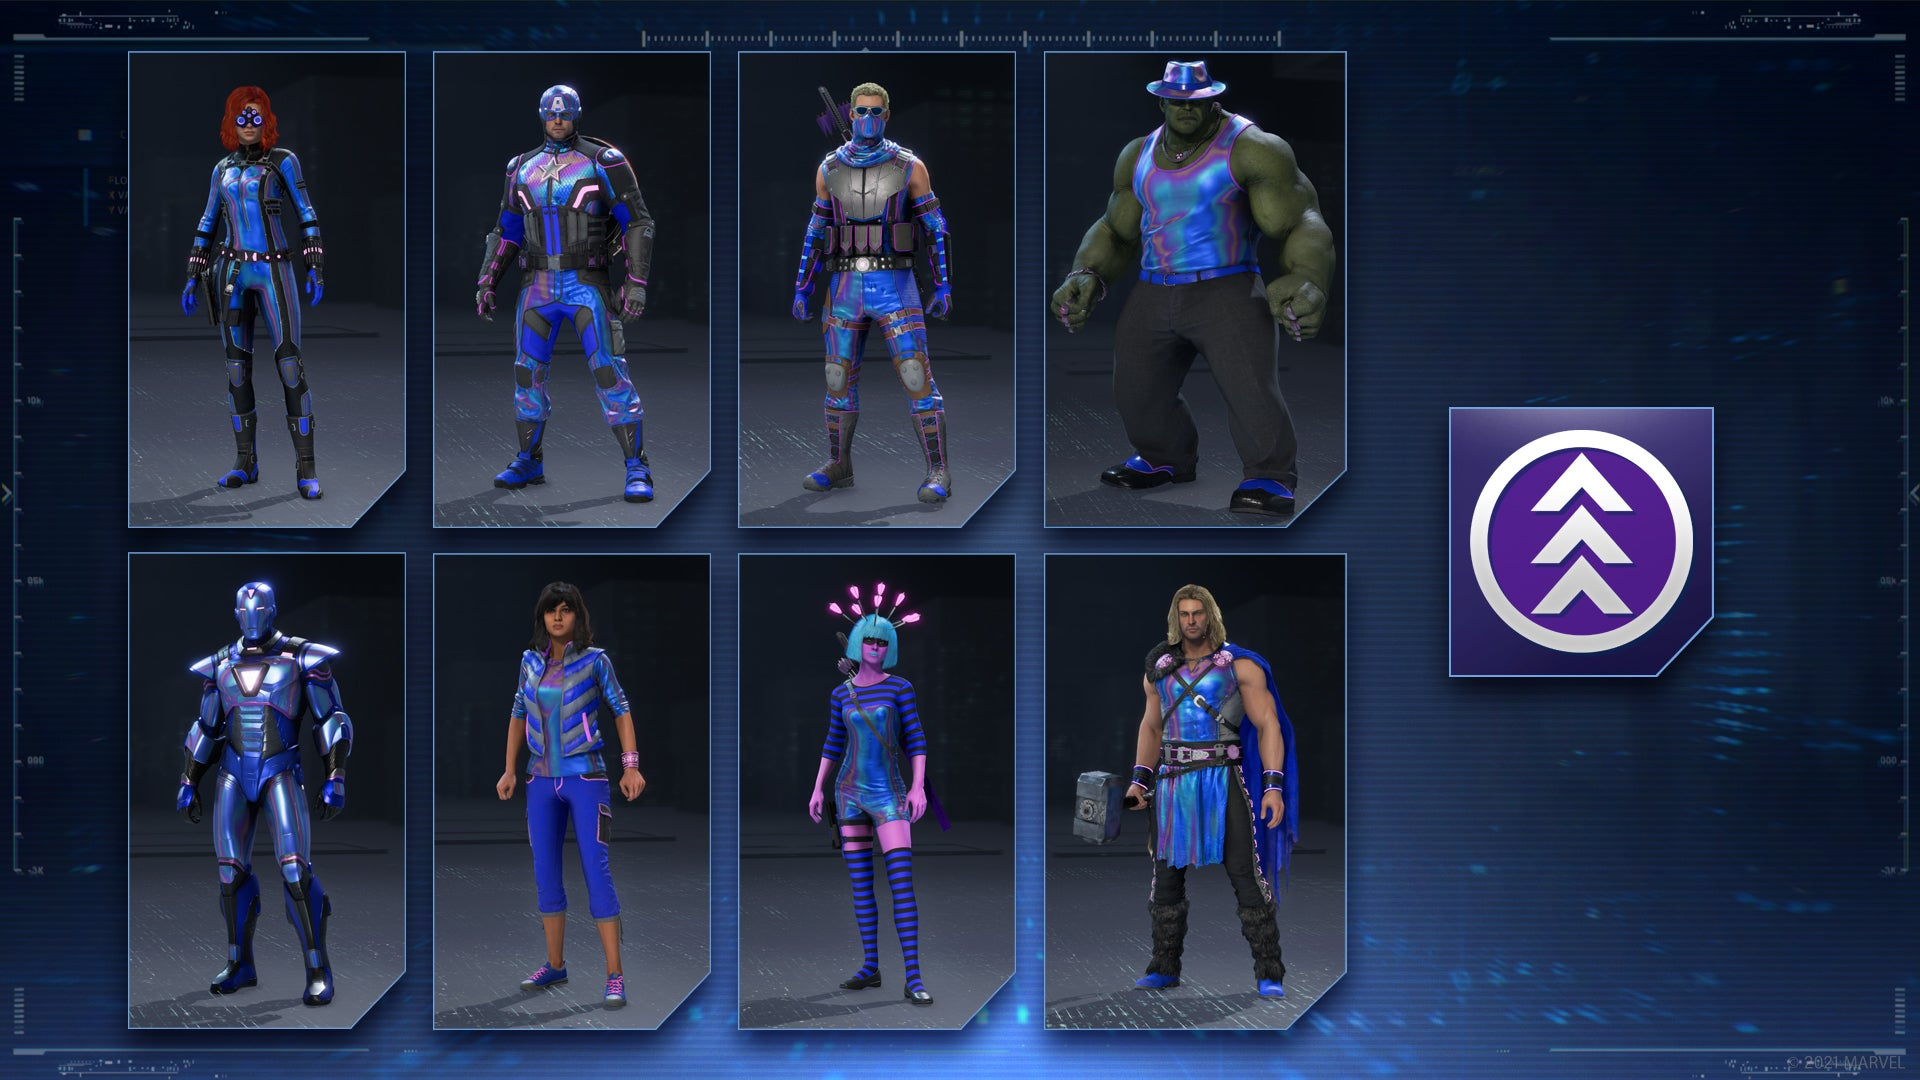 The Avengers in their Blue Holo outfit set